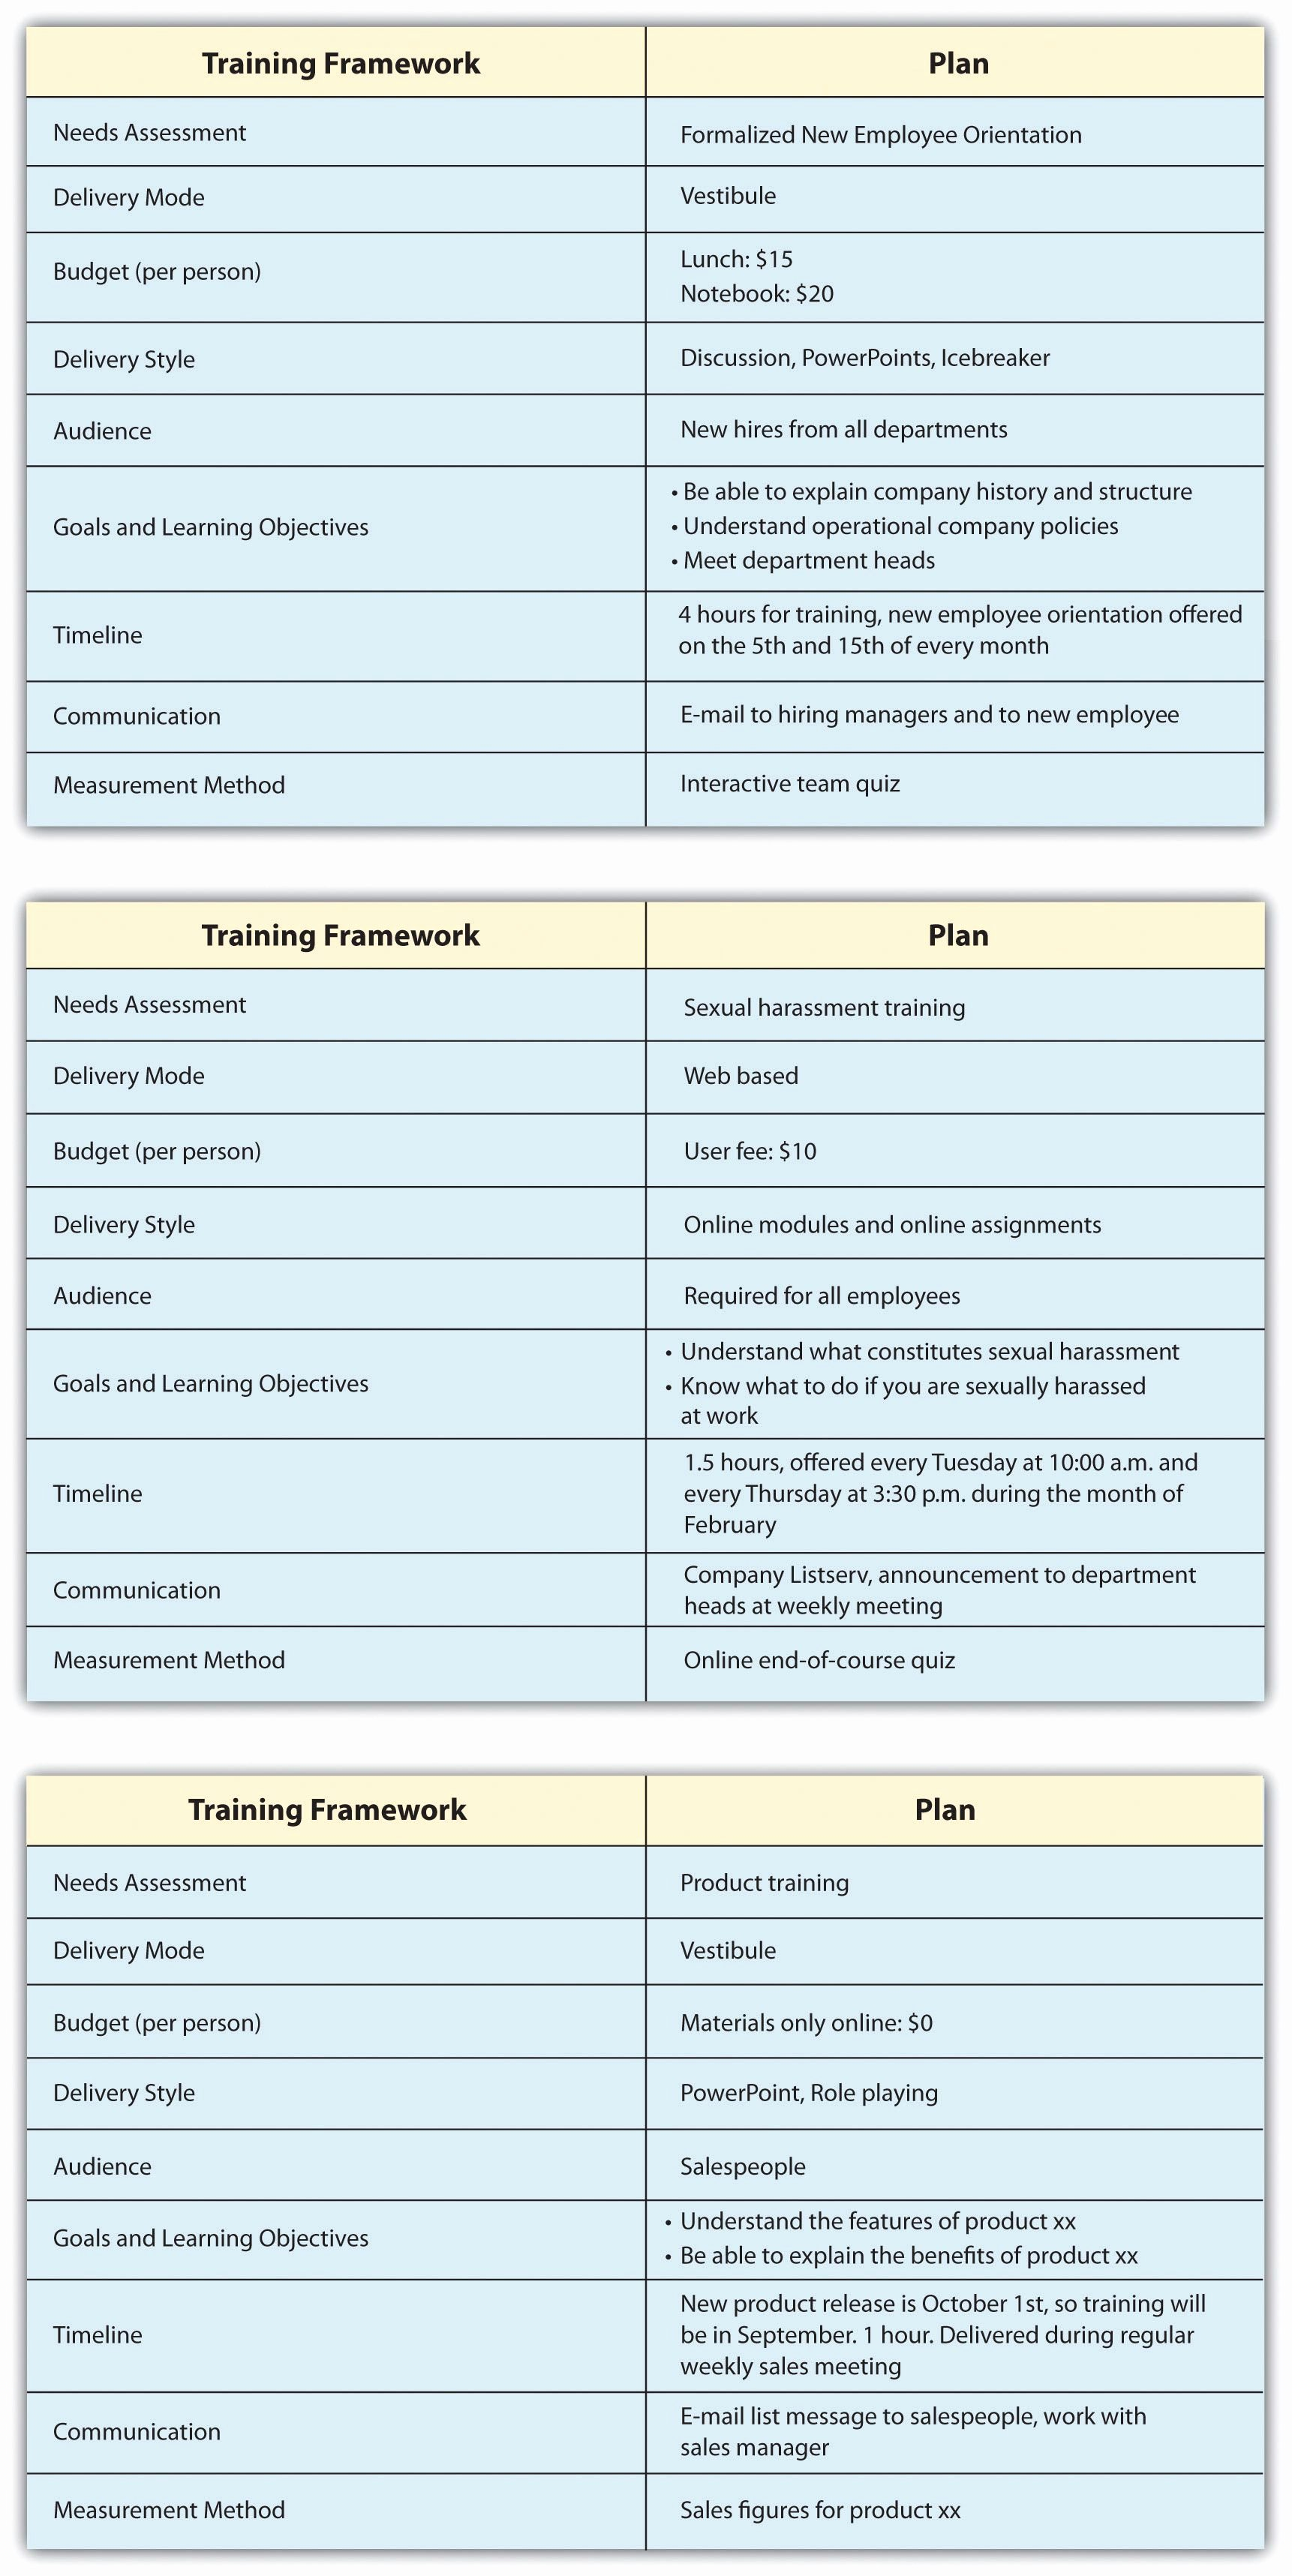 New Employee Training Plan Template Beautiful New Employee Training Plan Template Inquire before Your